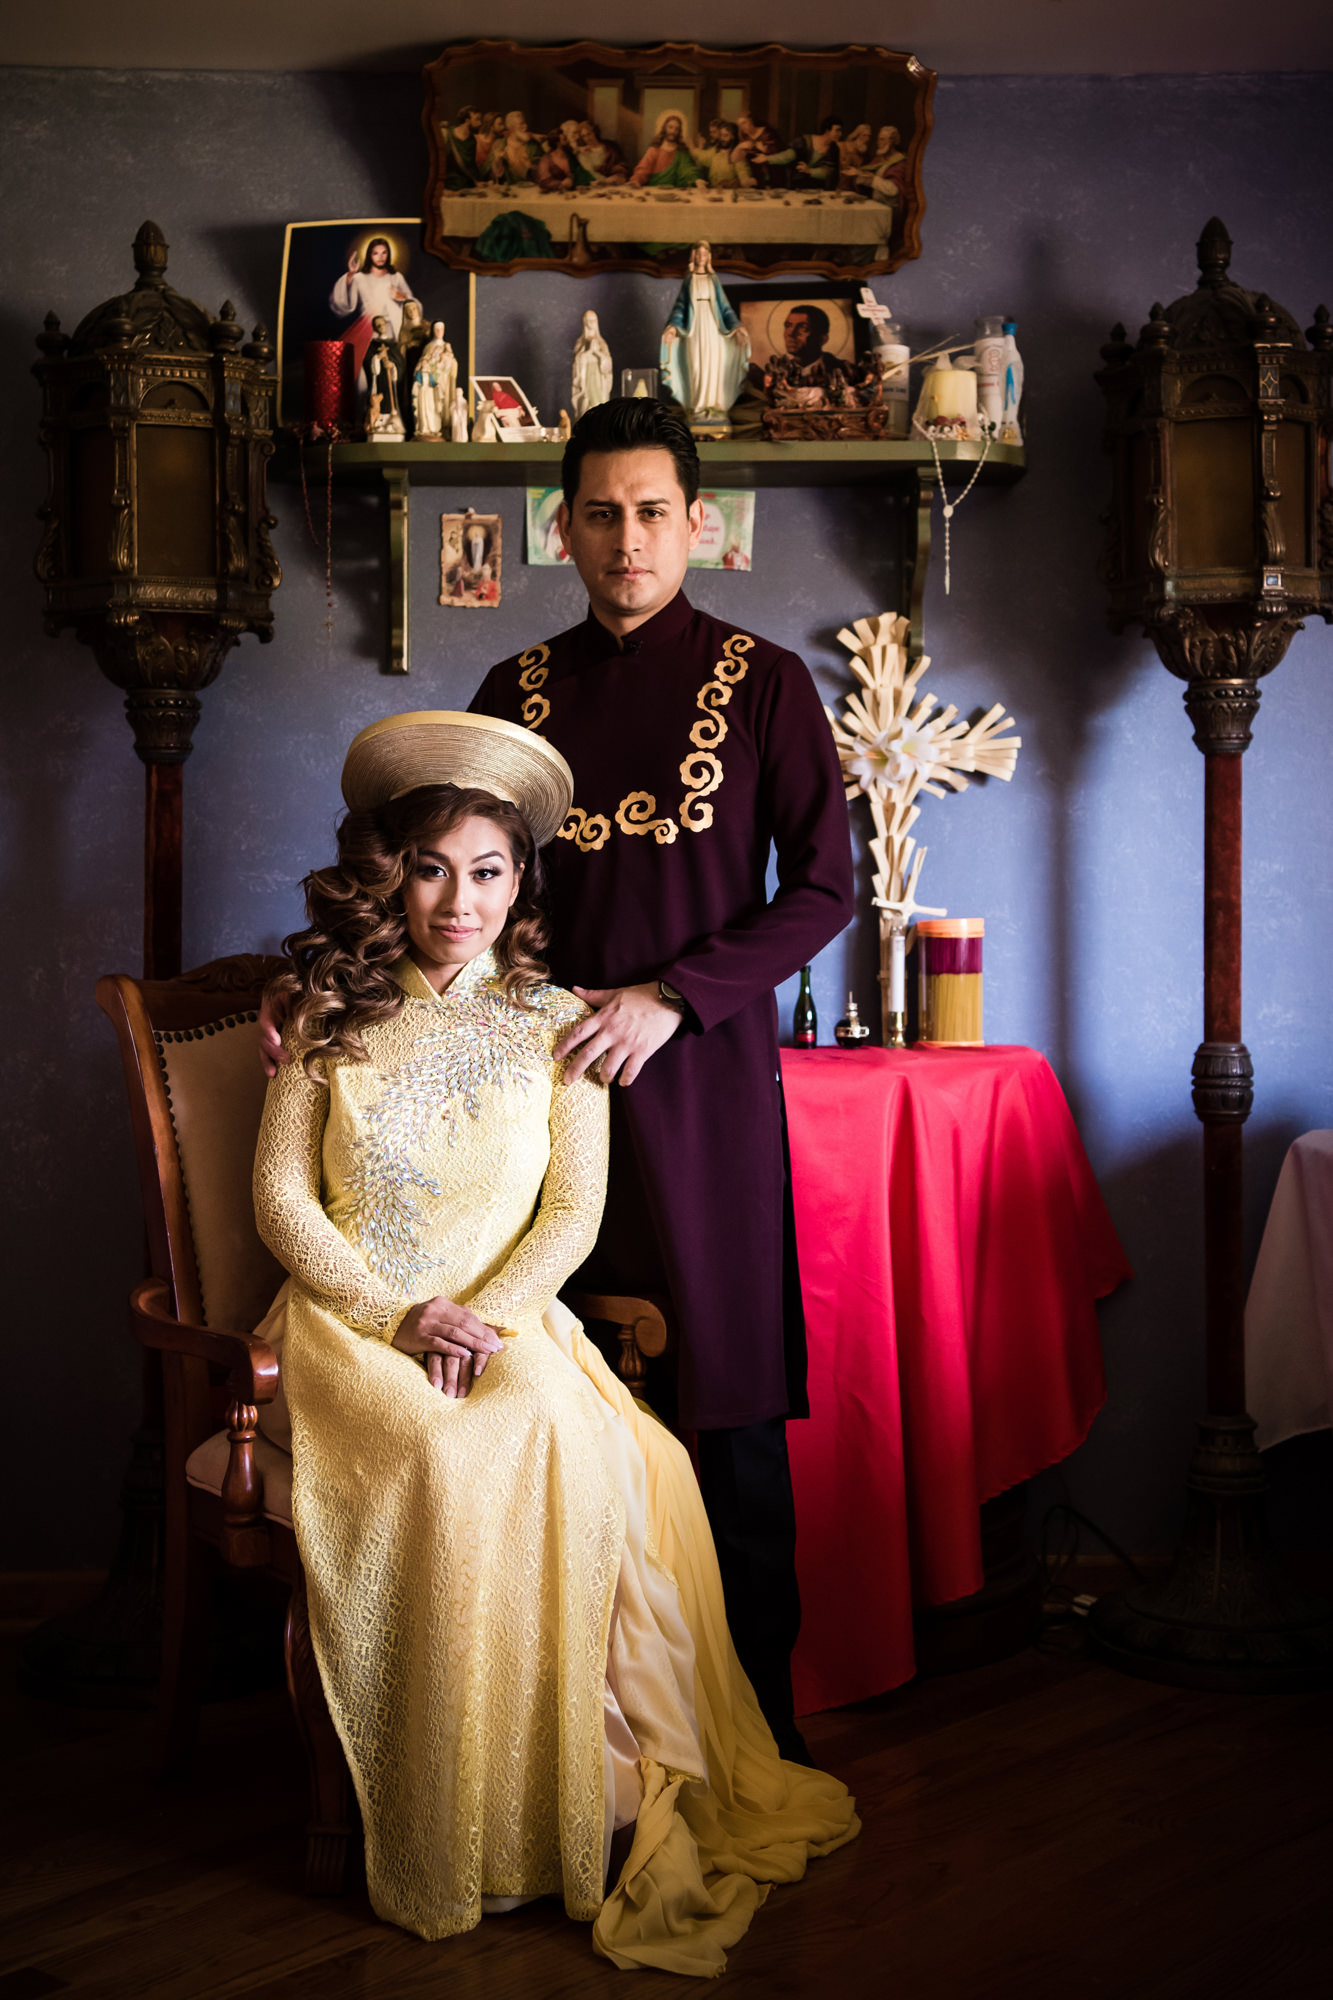 Bride and groom in traditional Vietnamese wedding attire, by Cliff Mautner